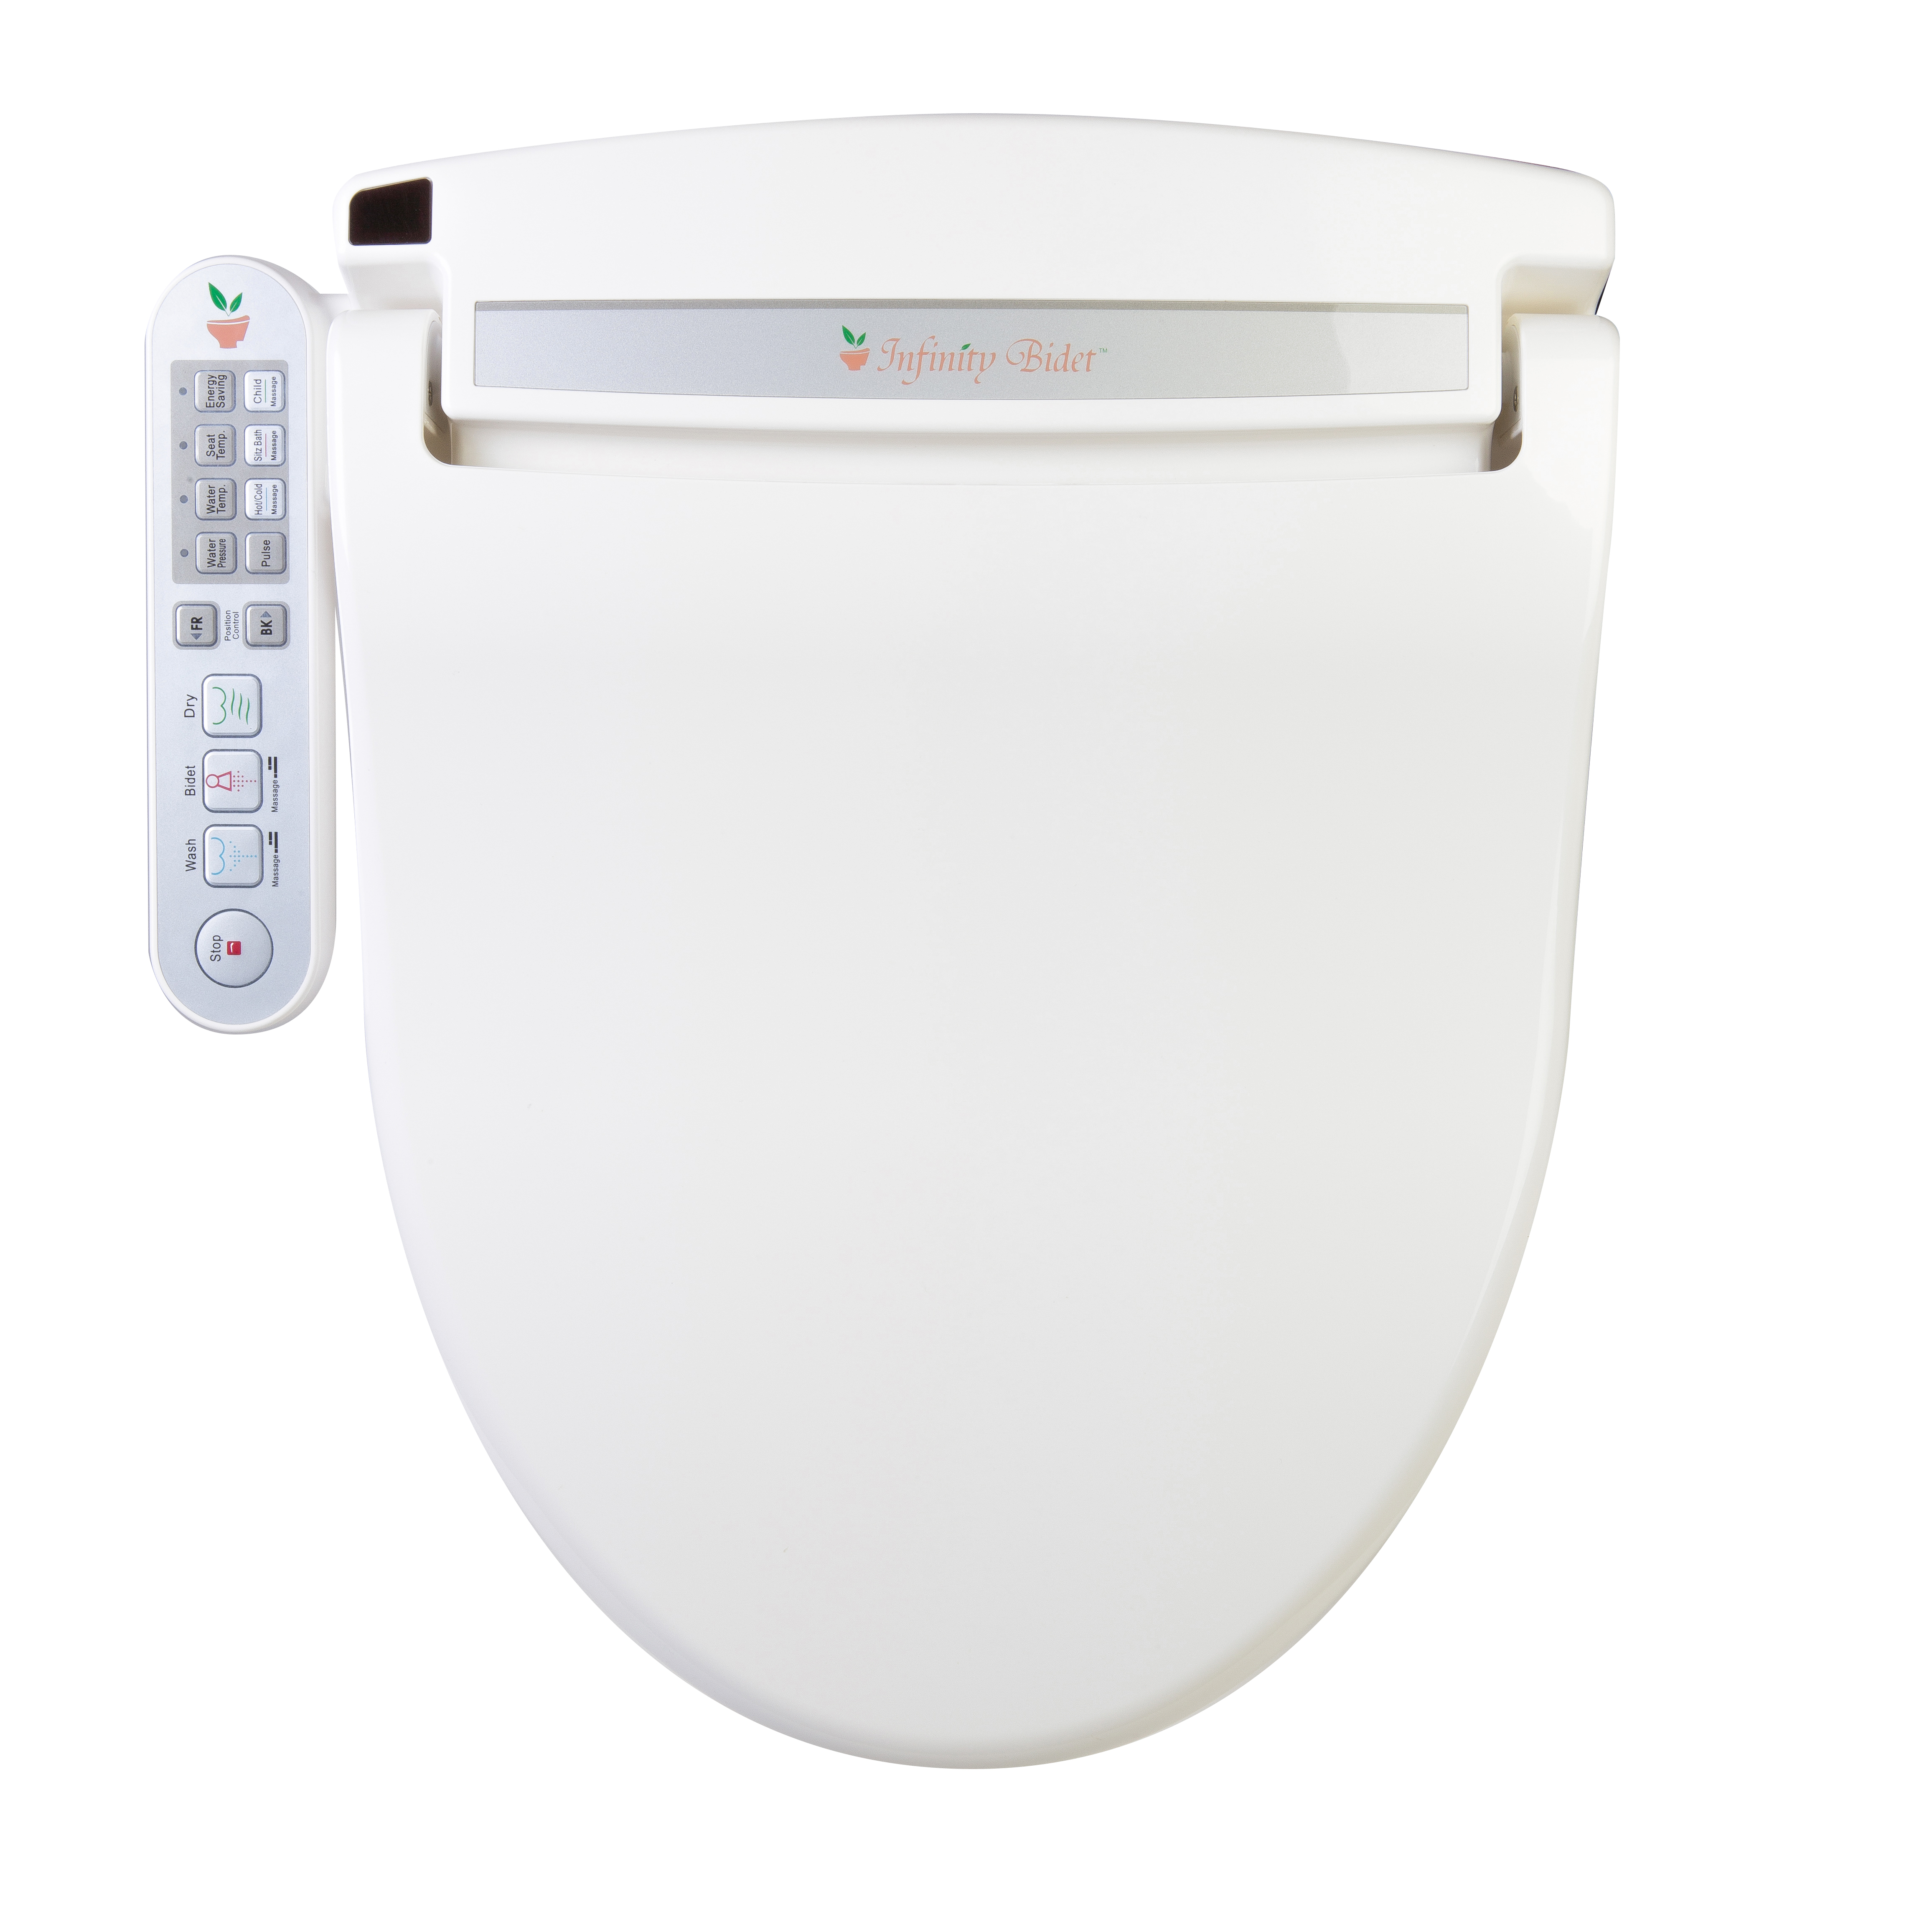 Clear Water Bidets  Infinity XLC 2000 Bidet Seat top view. Infinity XLC 2000 Bidet Toilet Seat   Best Bet to Heal You